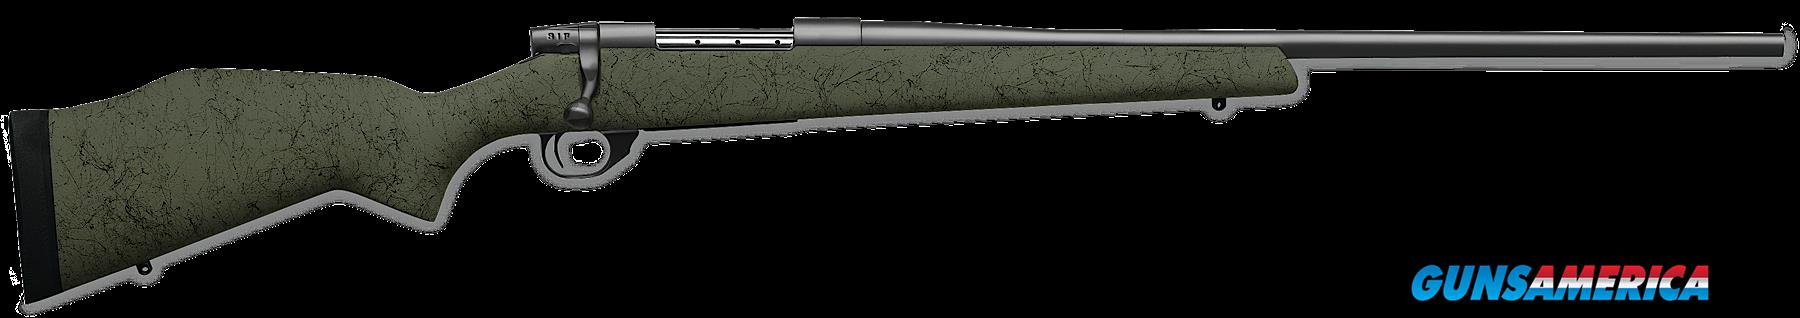 "Weatherby VMT300WR4O Vanguard Series 2 Range Certified Bolt 300 Weatherby Magnum 24"" 3+1 Synthetic  Guns > Rifles > Weatherby Rifles > Sporting"